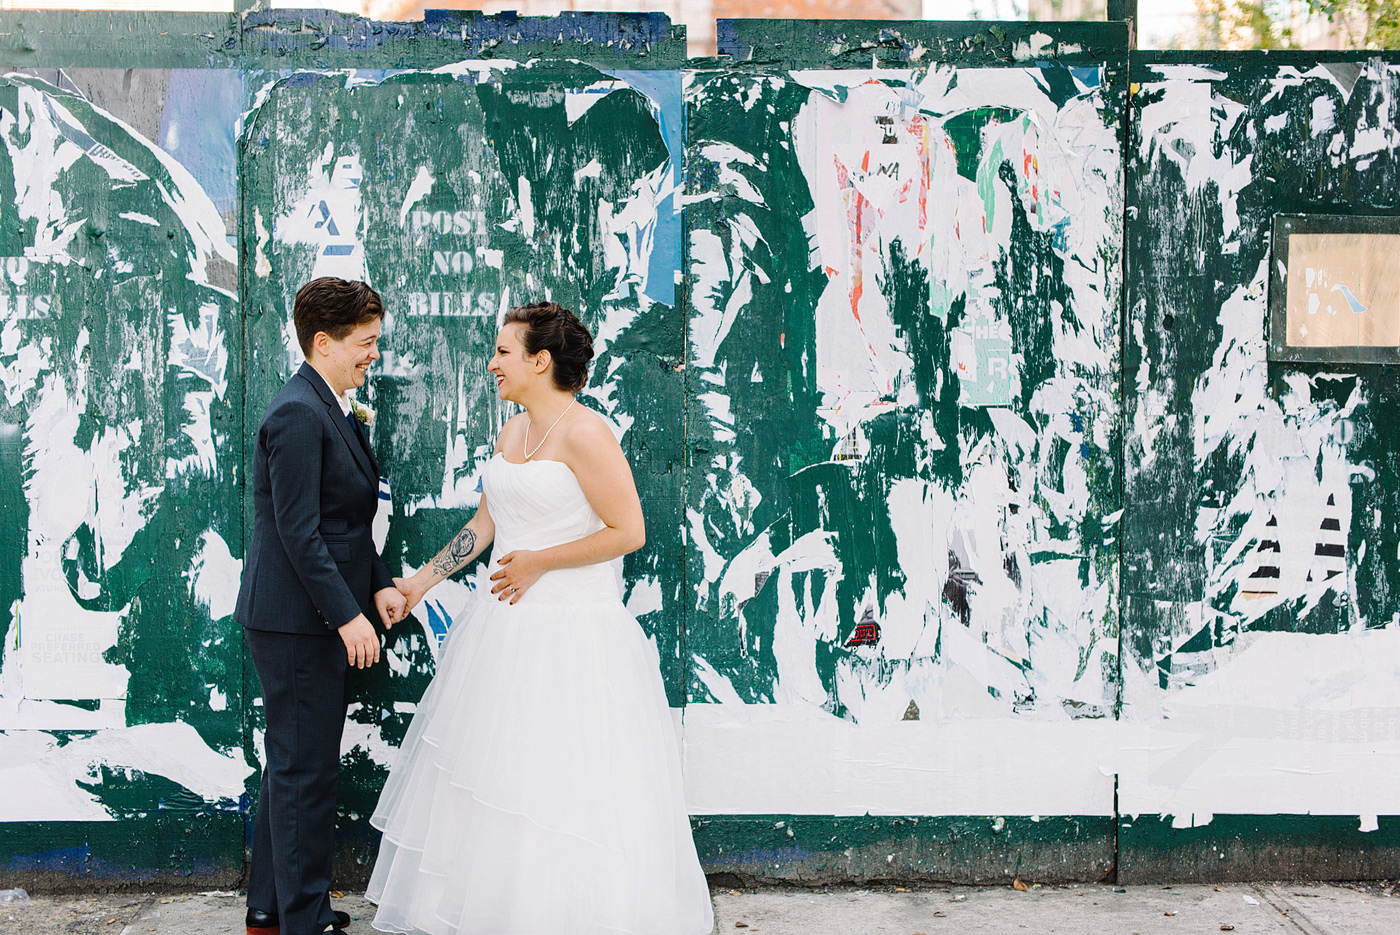 two brides with graffiti on wedding day